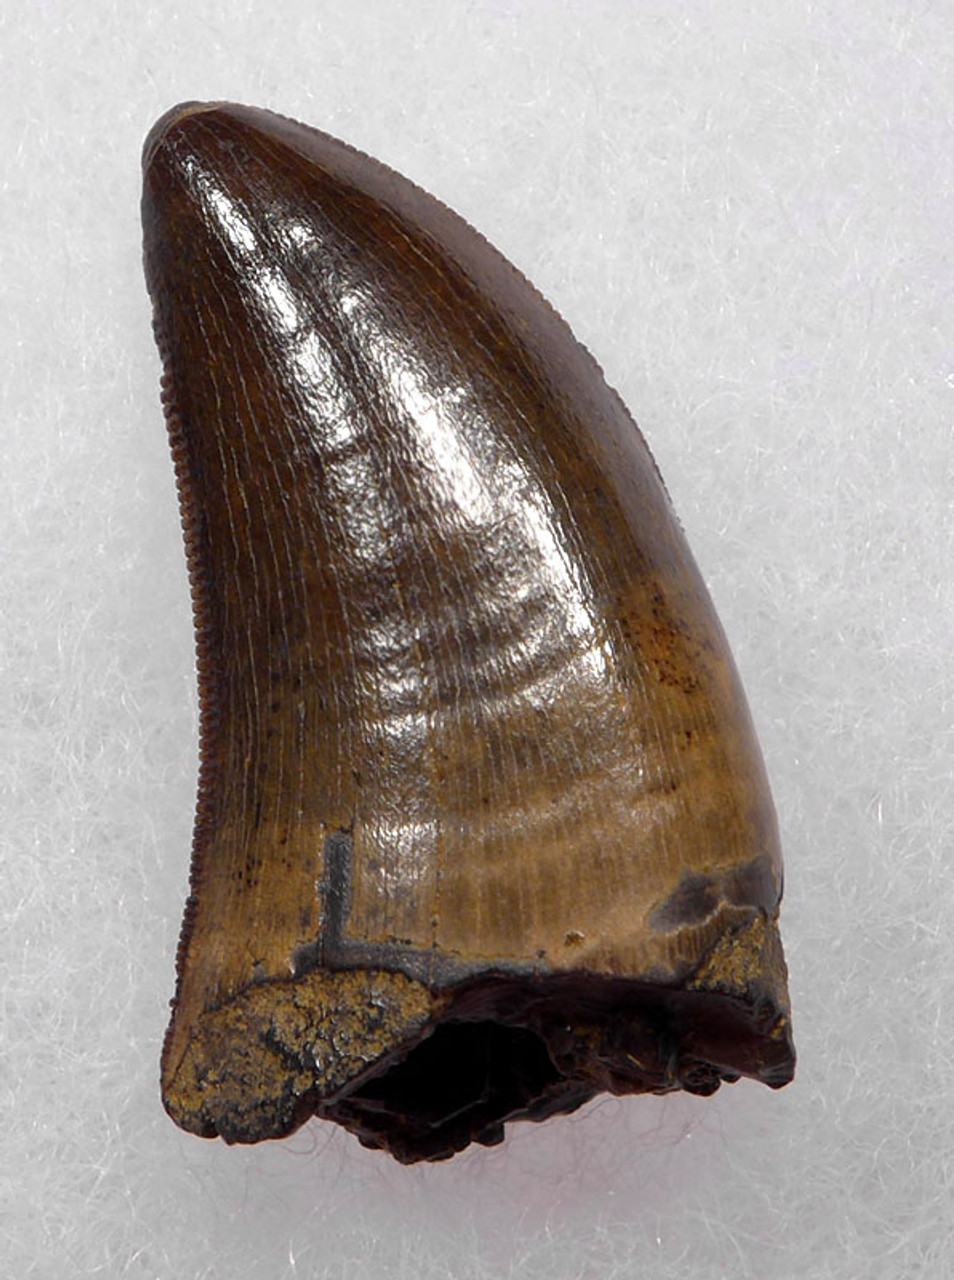 INVESTMENT GRADE BABY TYRANNOSAURUS T REX TOOTH WITH THE FINEST PRESERVATION *DT18-102